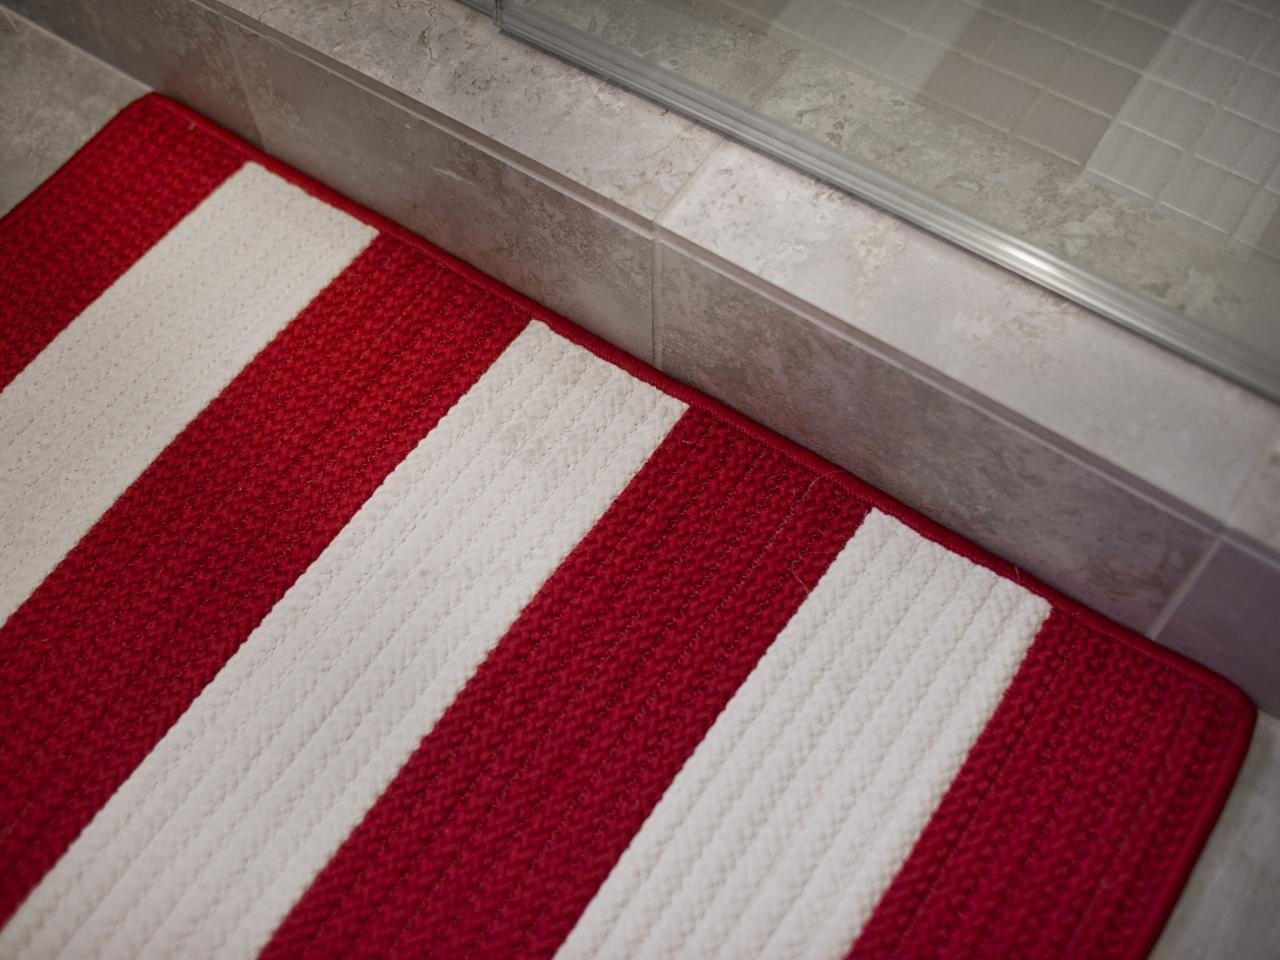 18 Surprising Things You Can Clean In Your Washing Machine For Striped Mats (View 4 of 15)